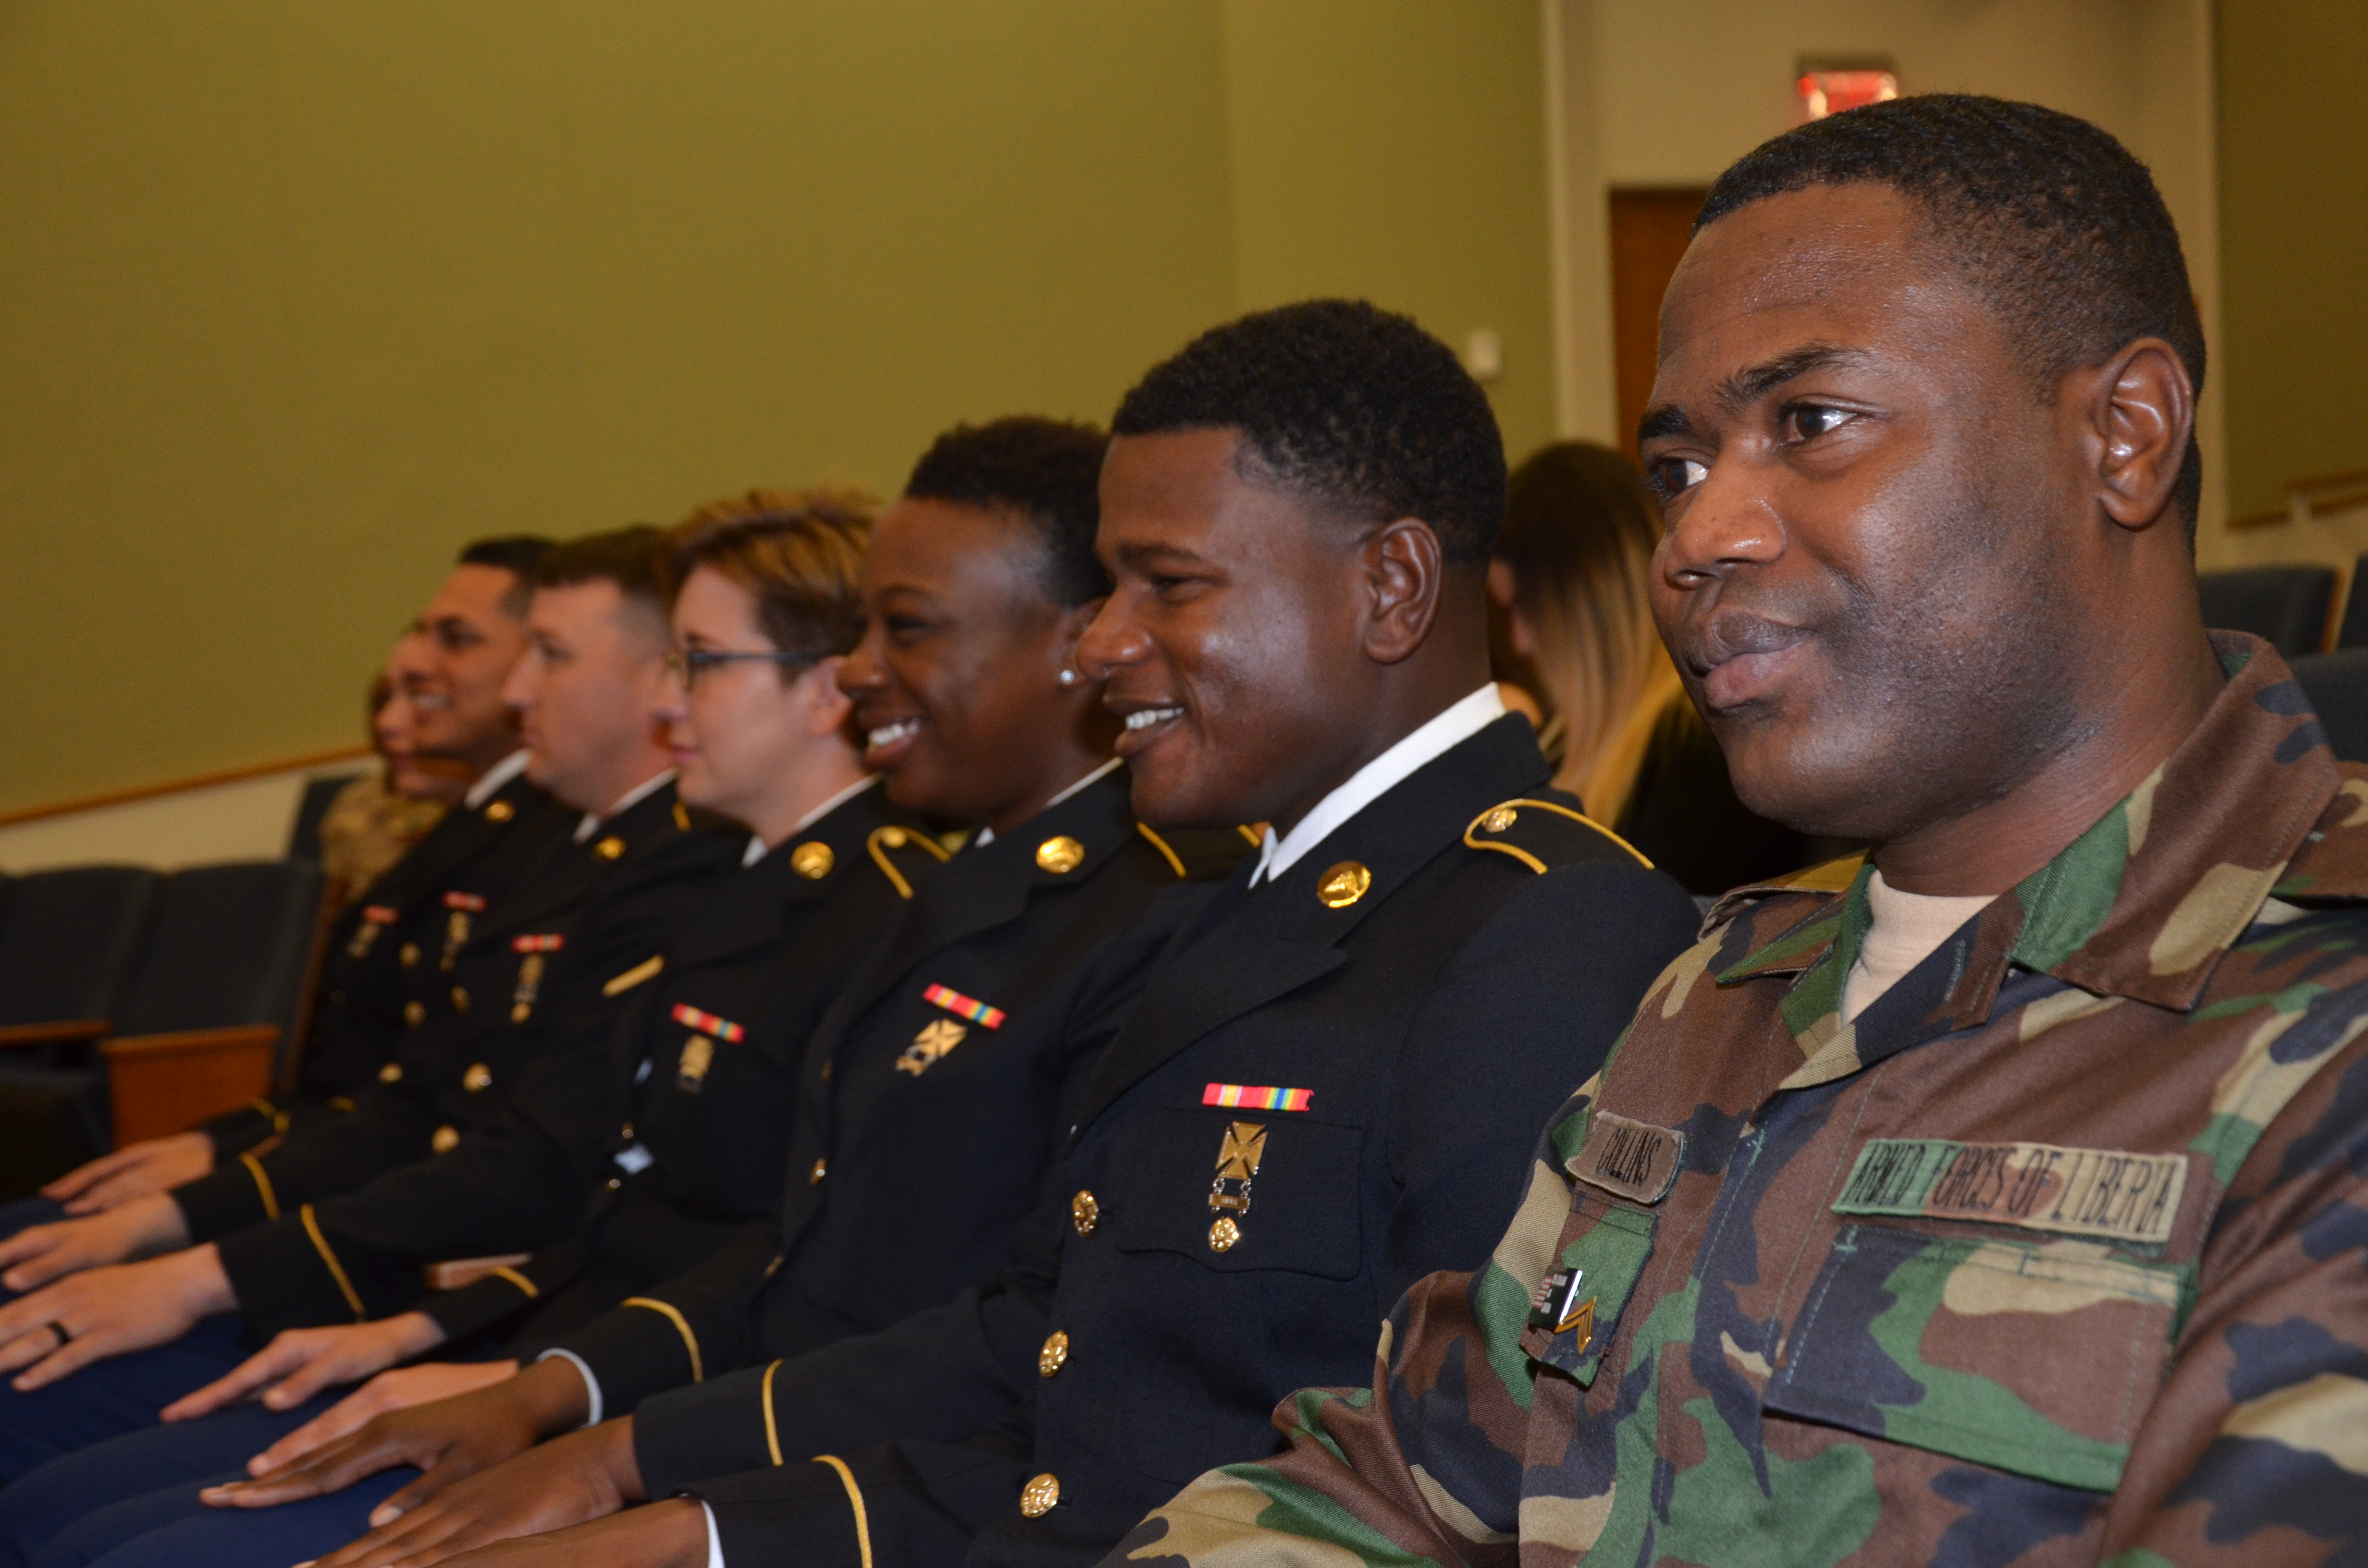 Pfc. Yardy Collins, Liberian Armed Forces, and his fellow classmates wait for the start of the Medical Education and Training Campus preventative medicine specialist graduation ceremony, Oct. 20, 2017. Collins is the first international military student from Liberia to graduate from the program.